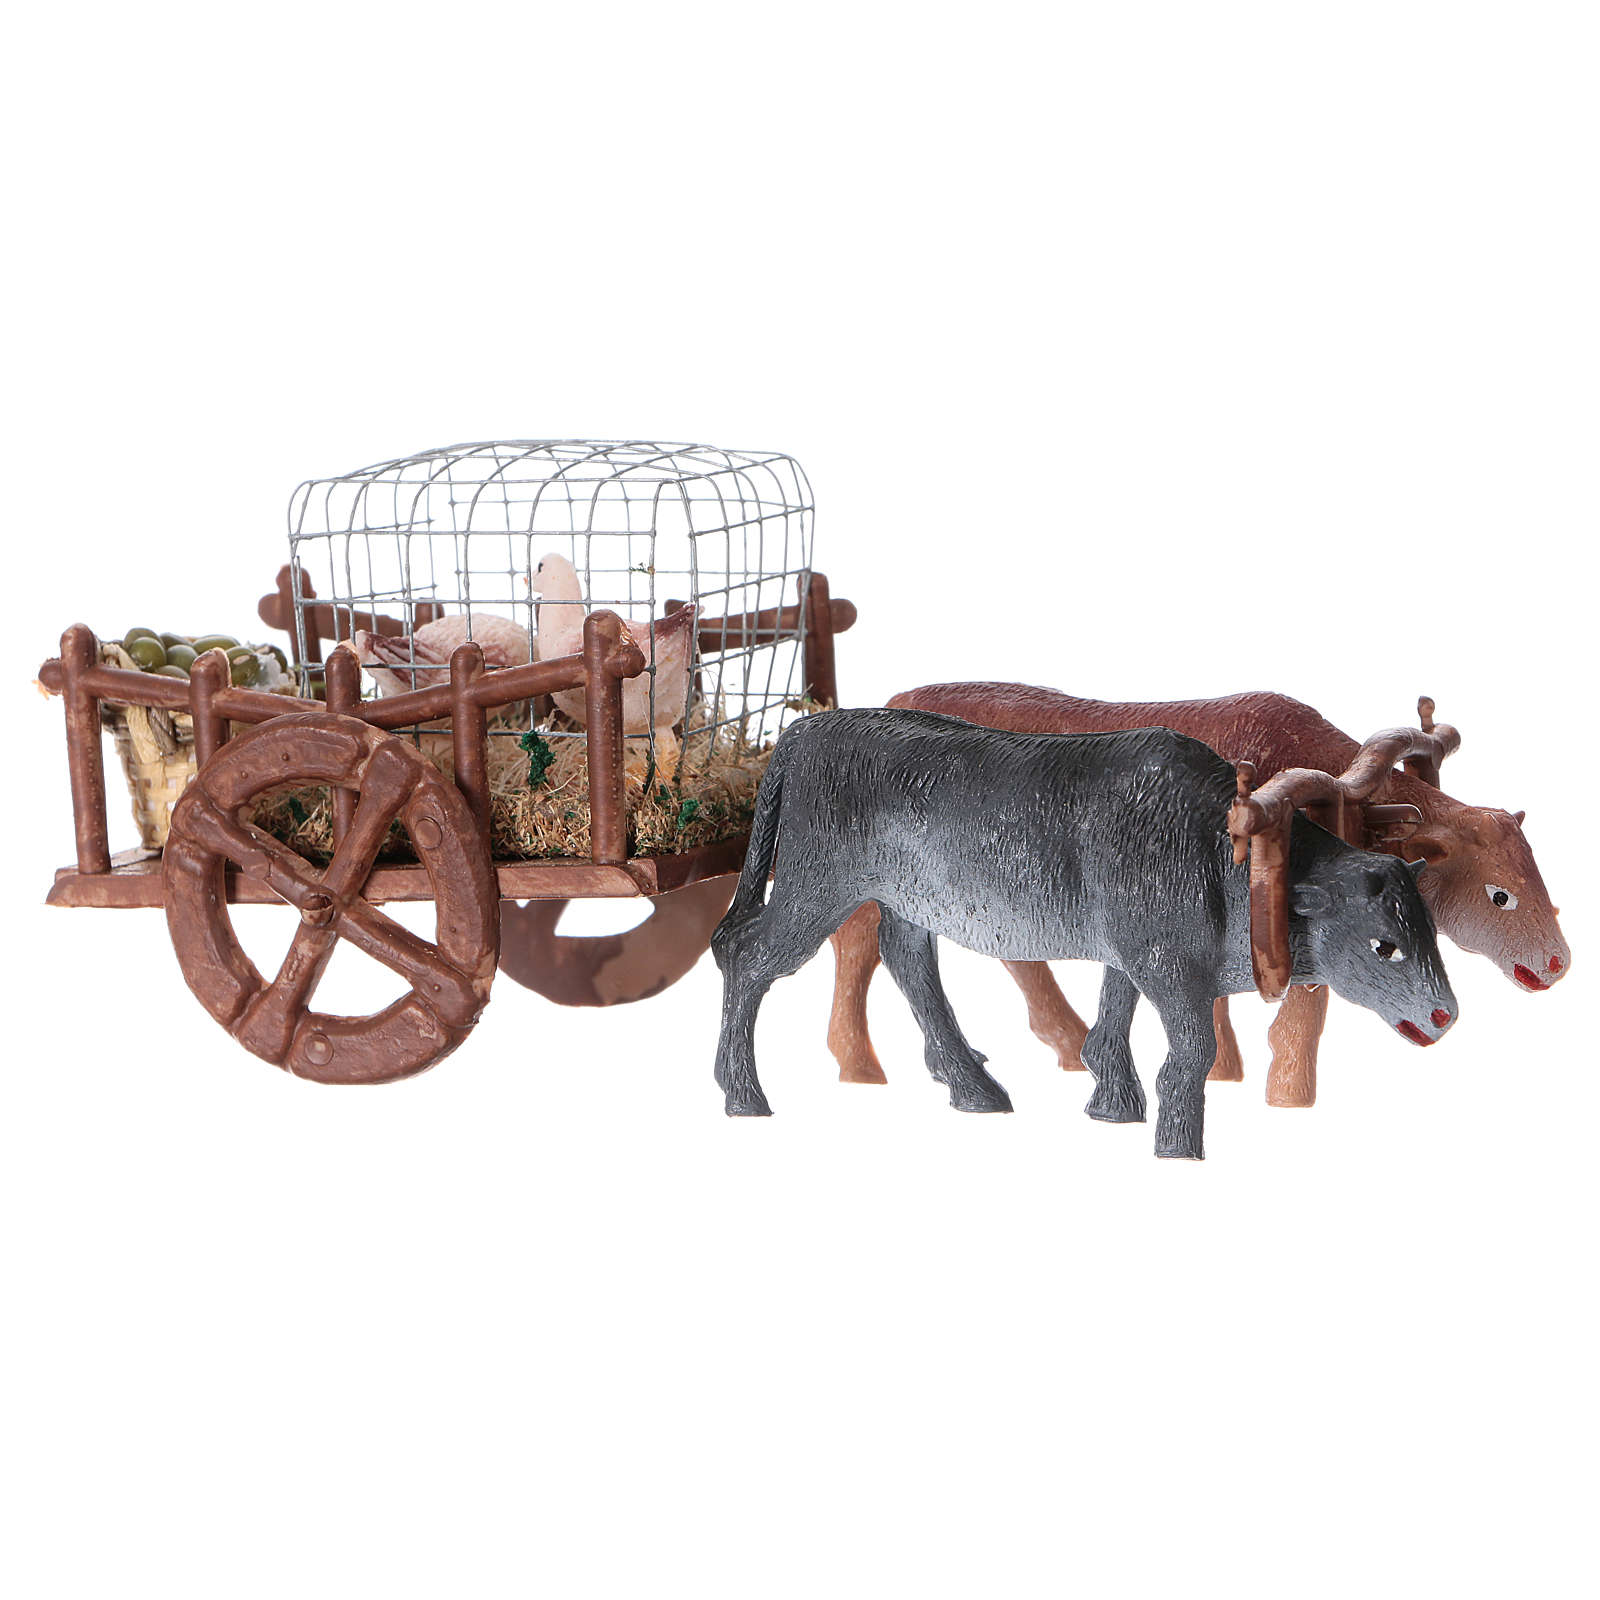 Cart with geese and eggs real size 6x14x5 cm for Nativity scene 5 cm 4